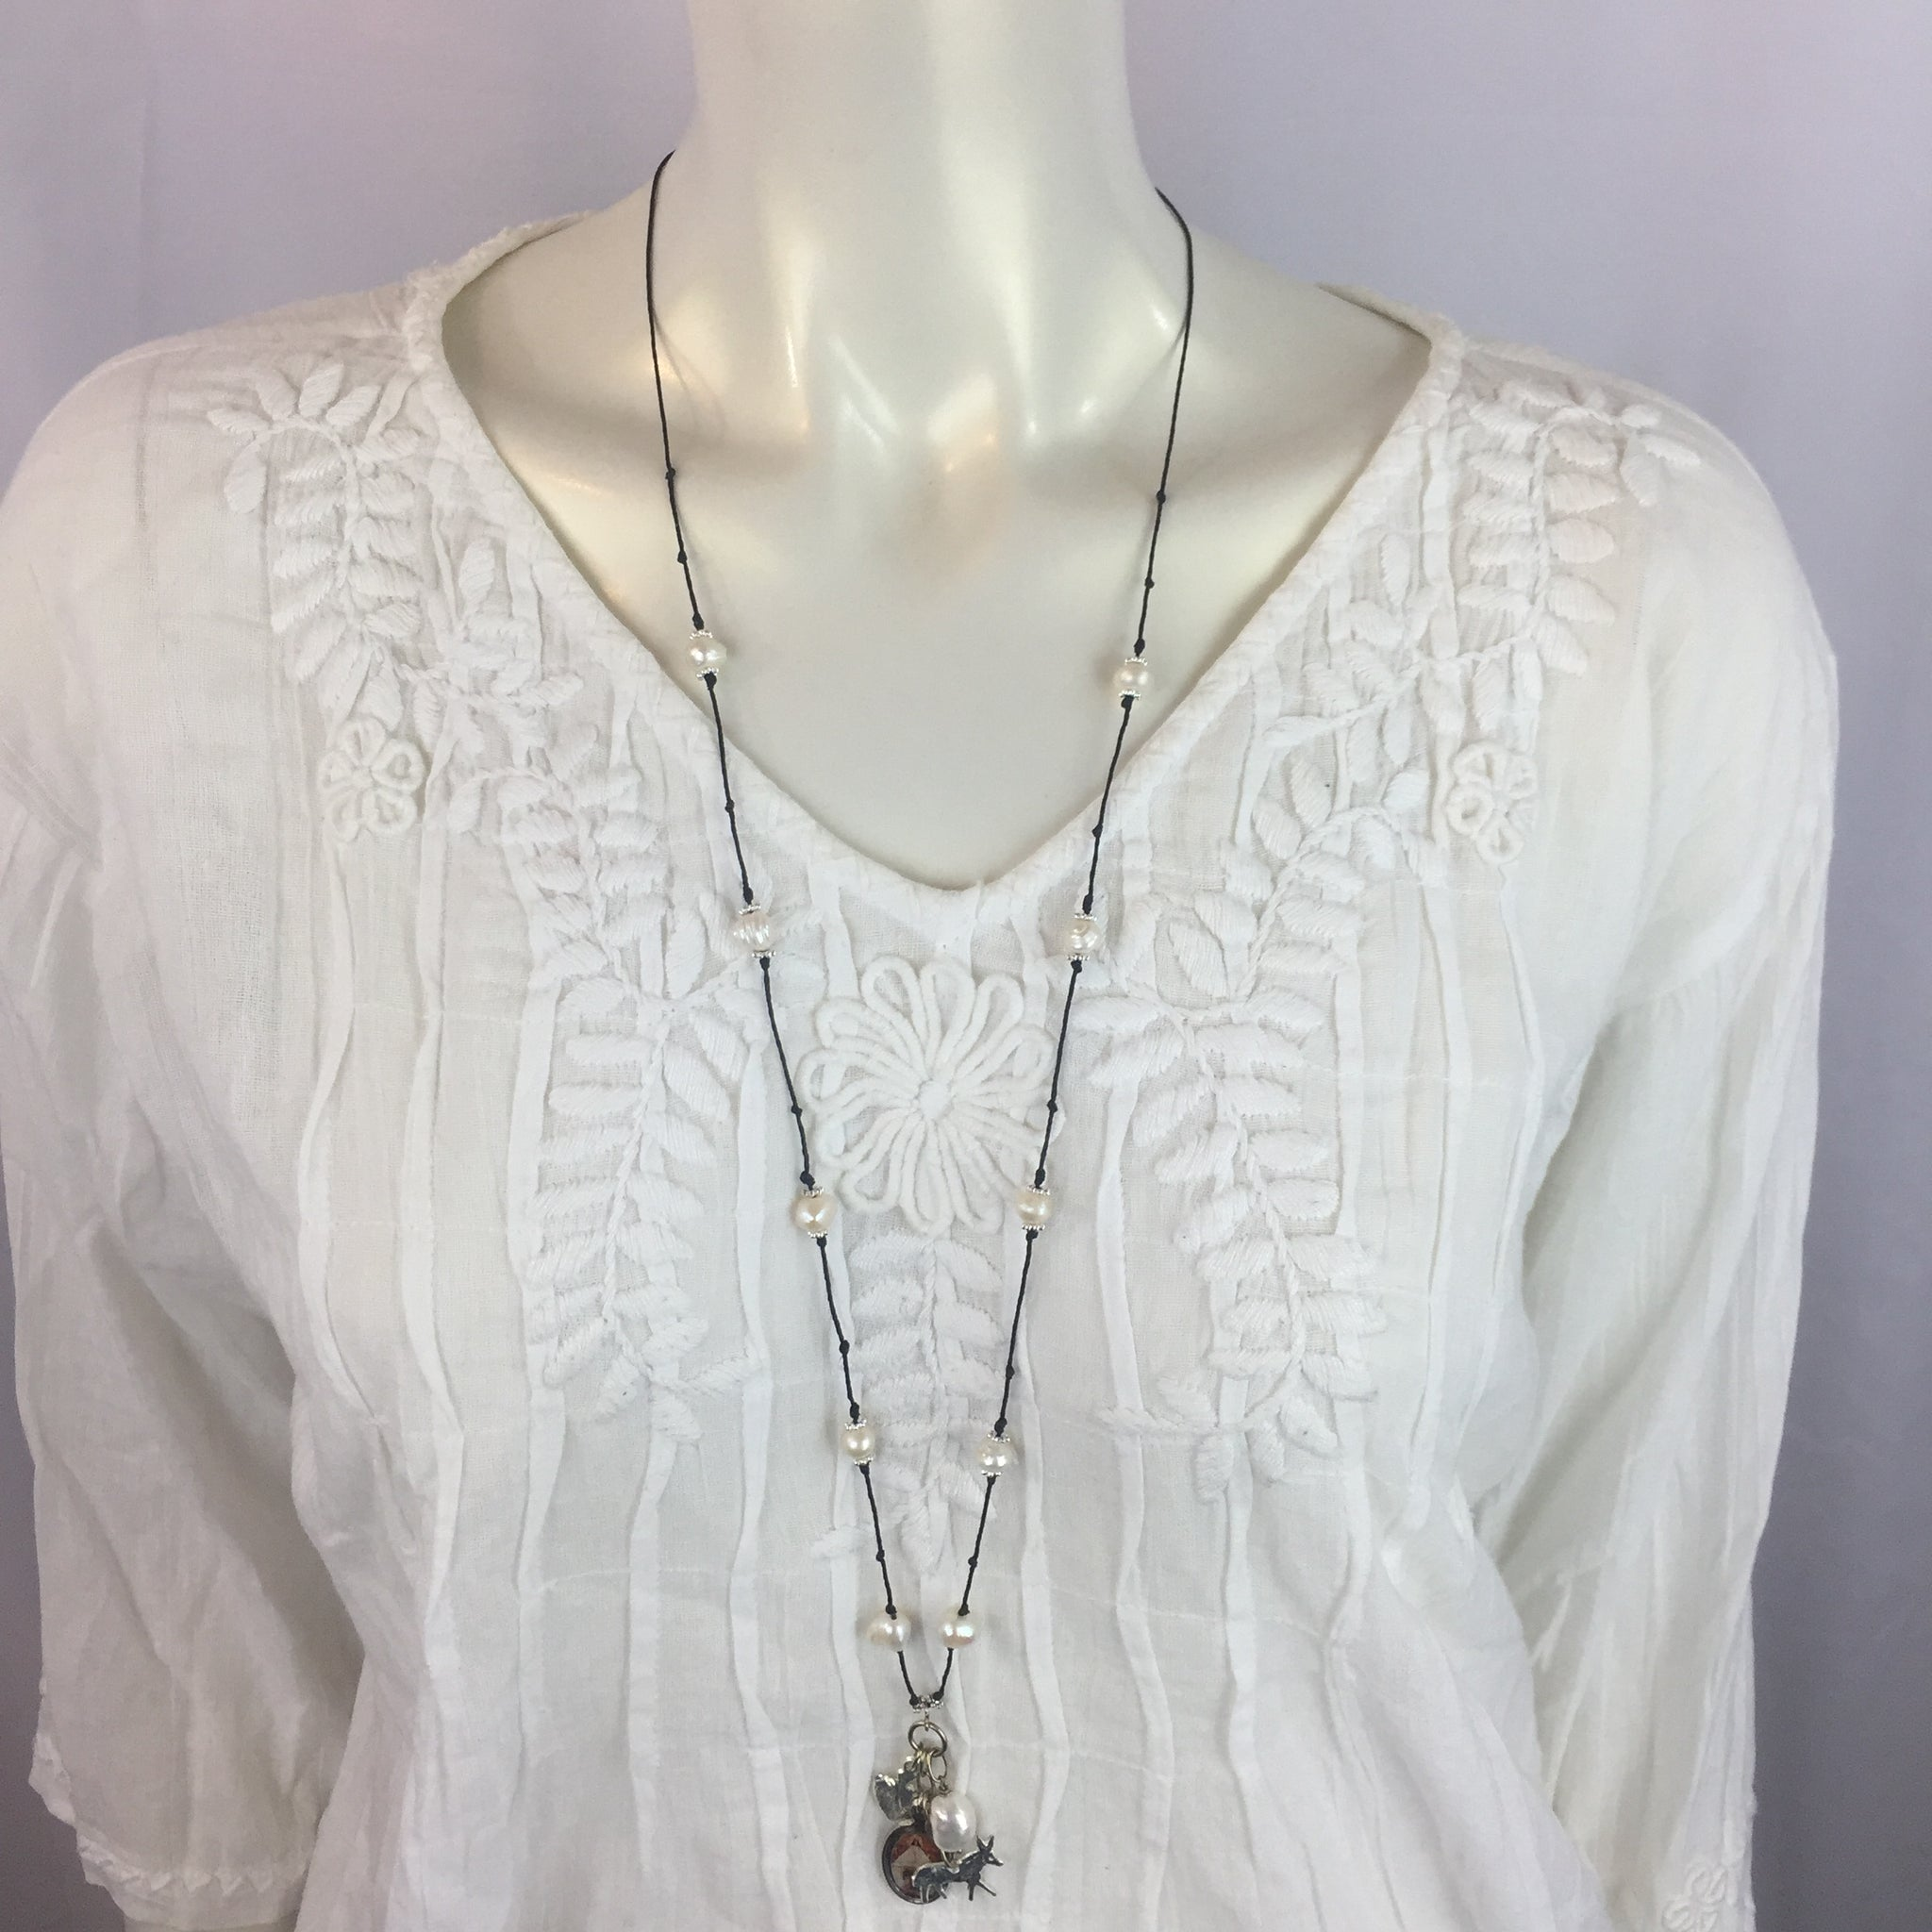 Juquila milagro necklace